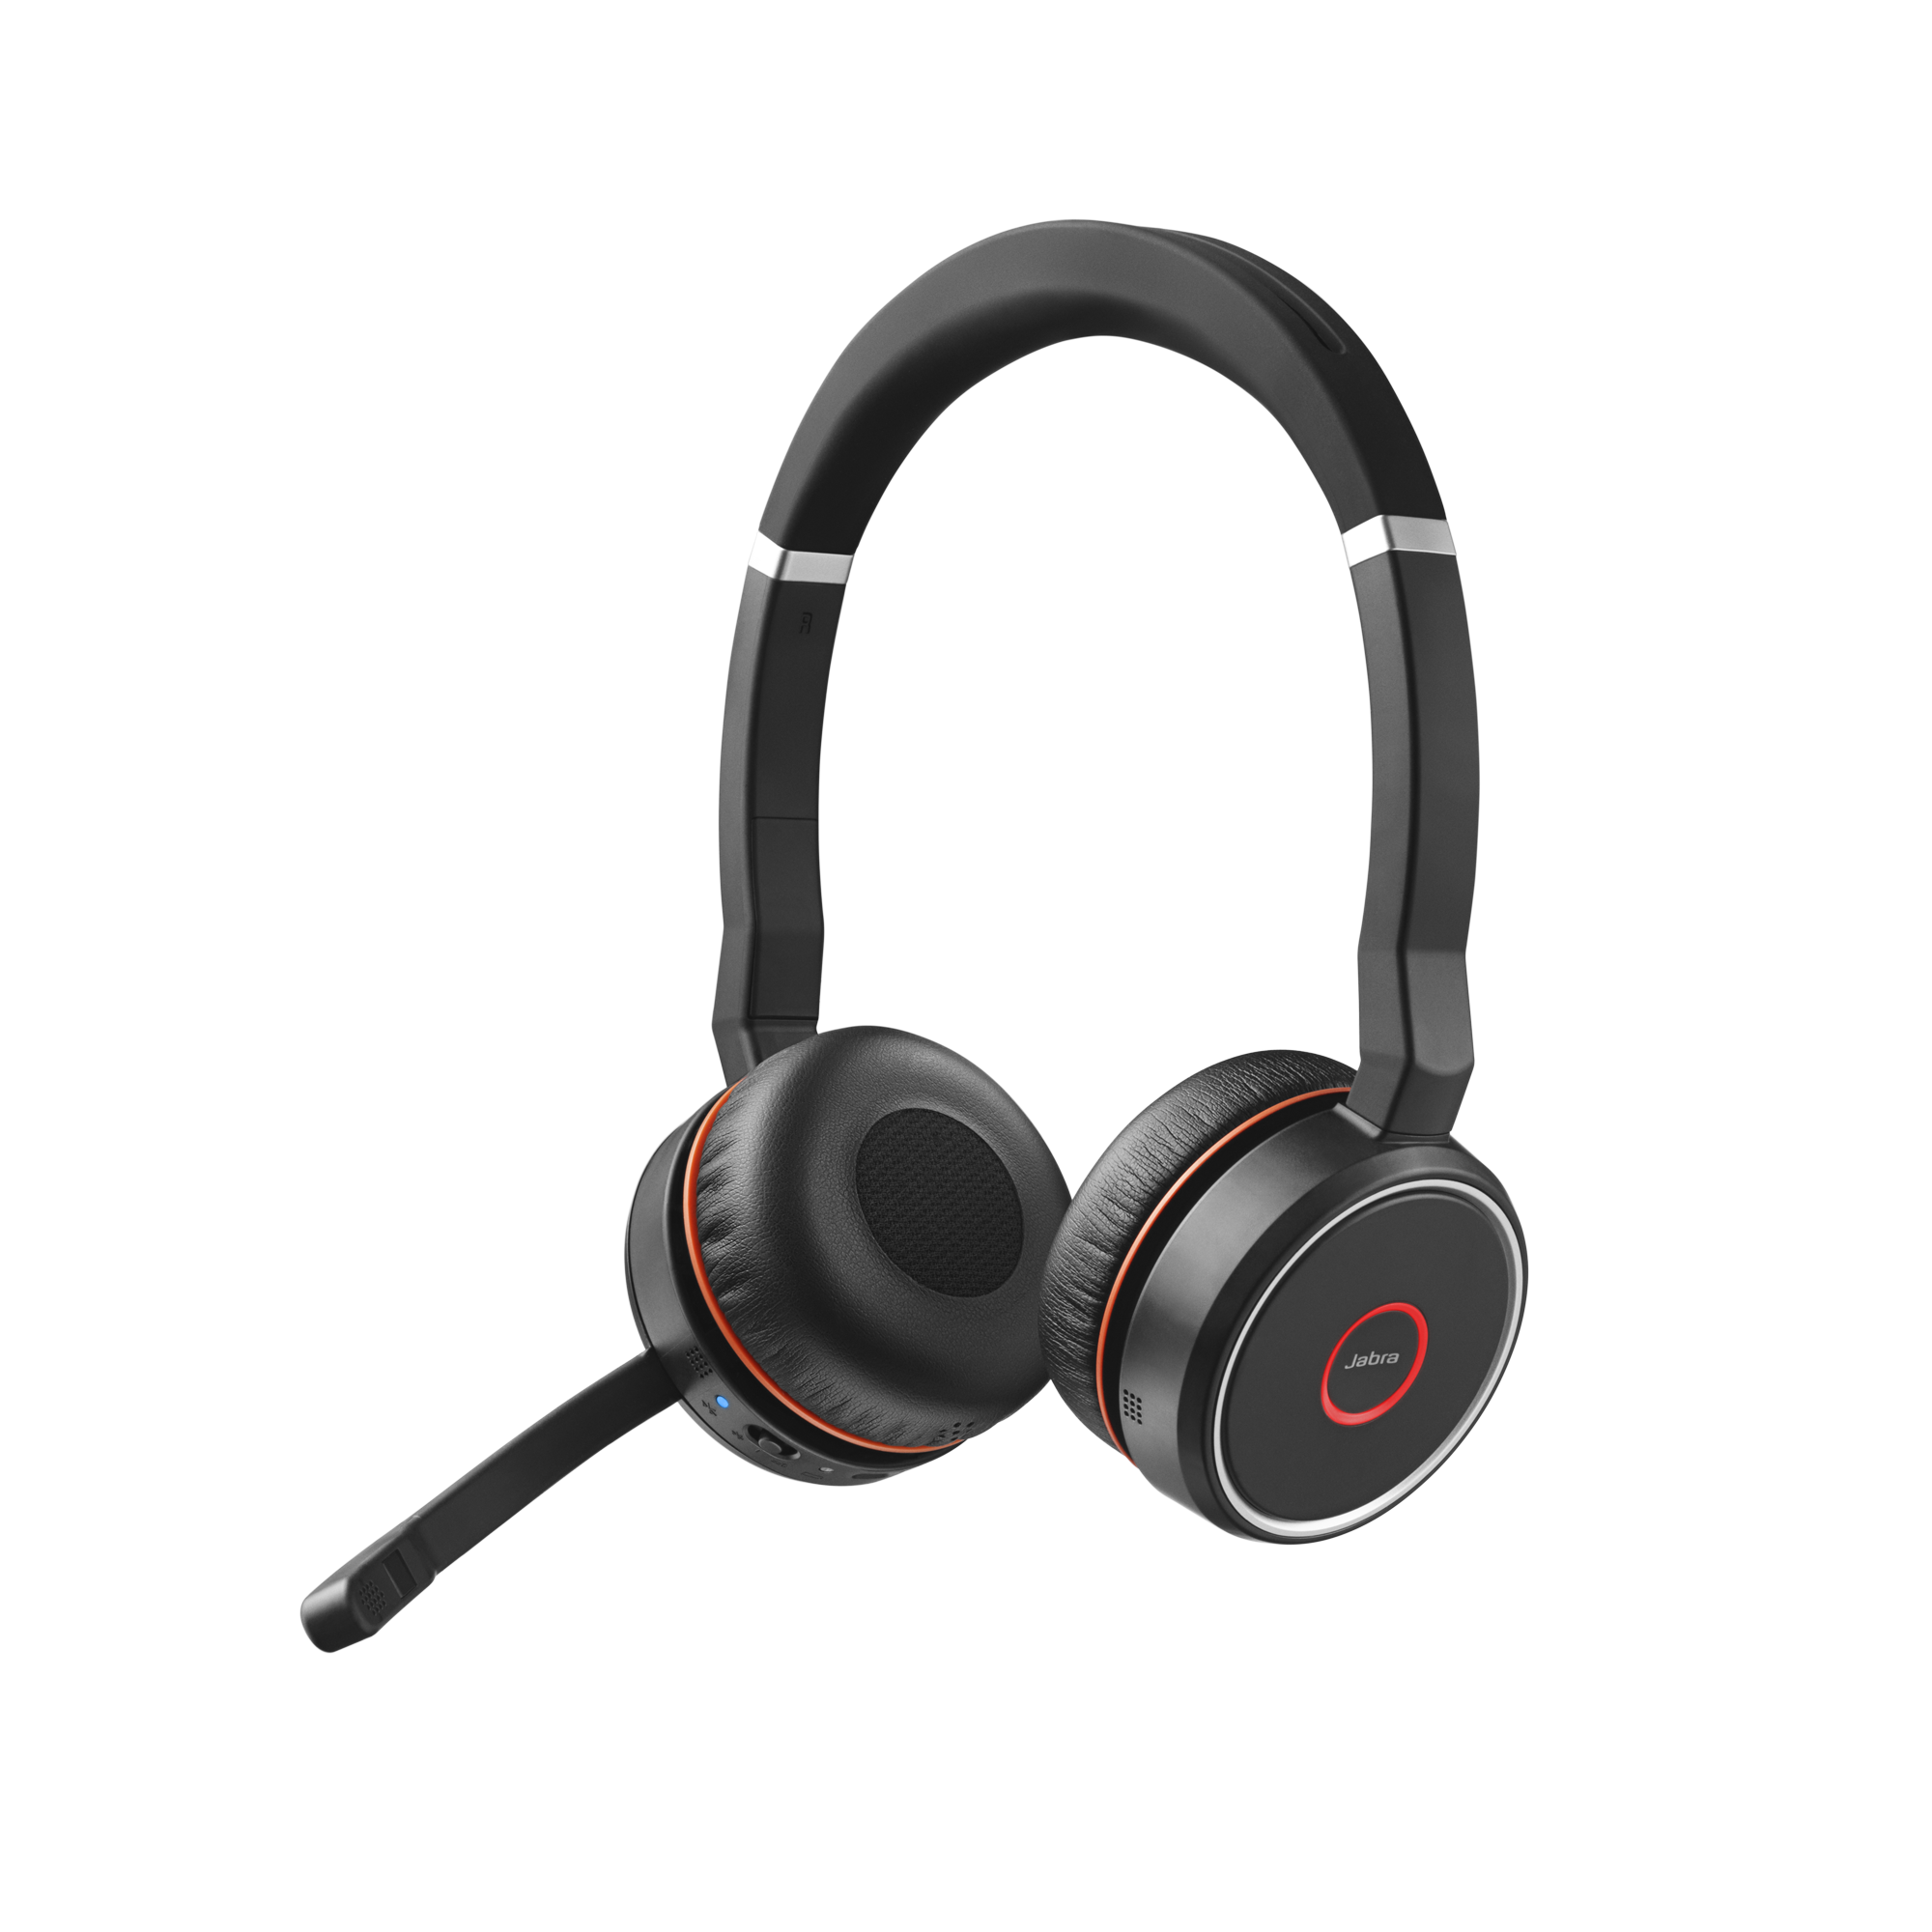 Jabra Evolve 75 product angle busy